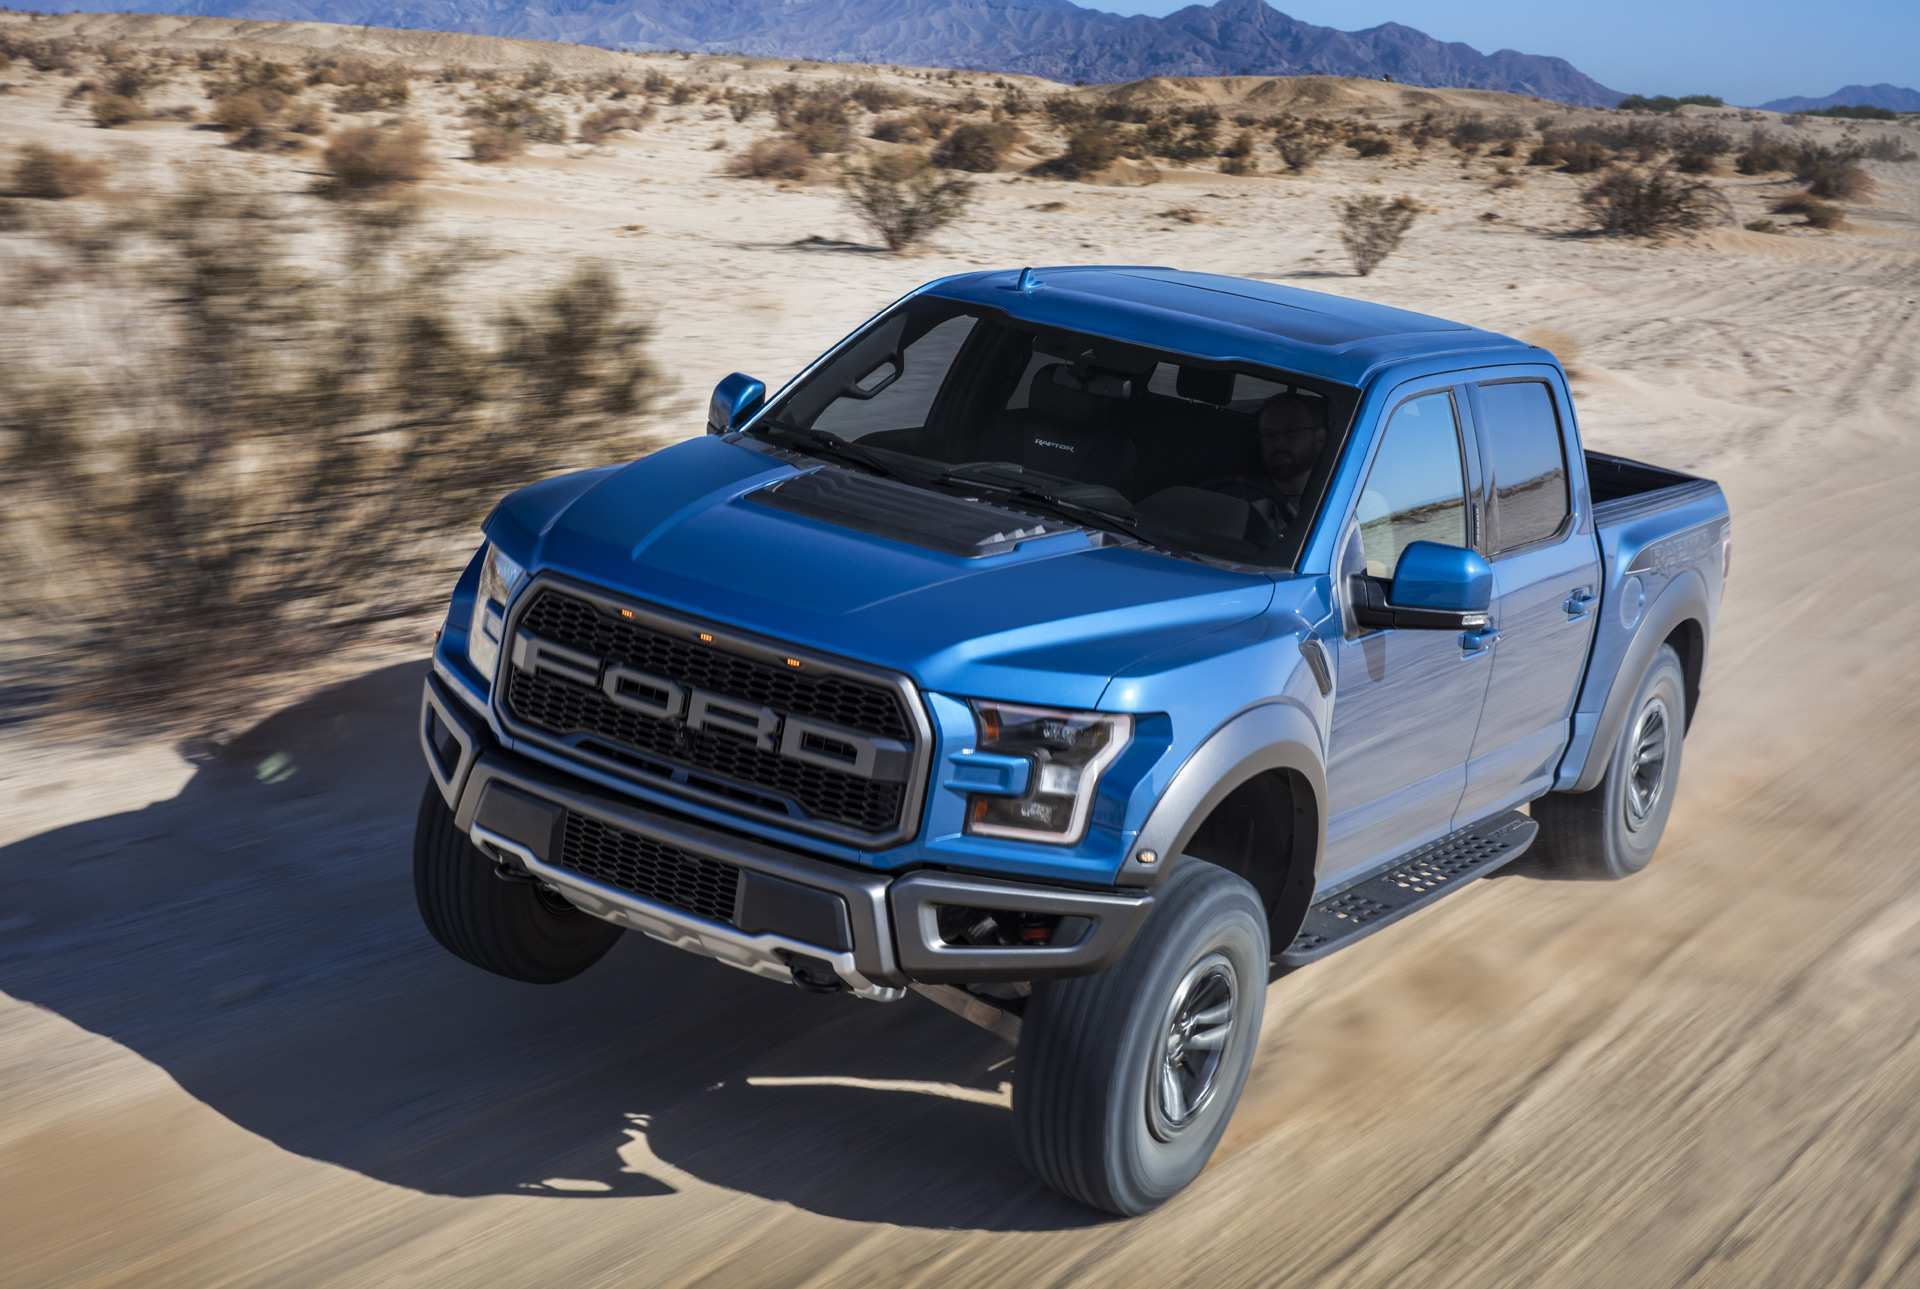 43 Concept of 2019 Ford Velociraptor Price Engine with 2019 Ford Velociraptor Price